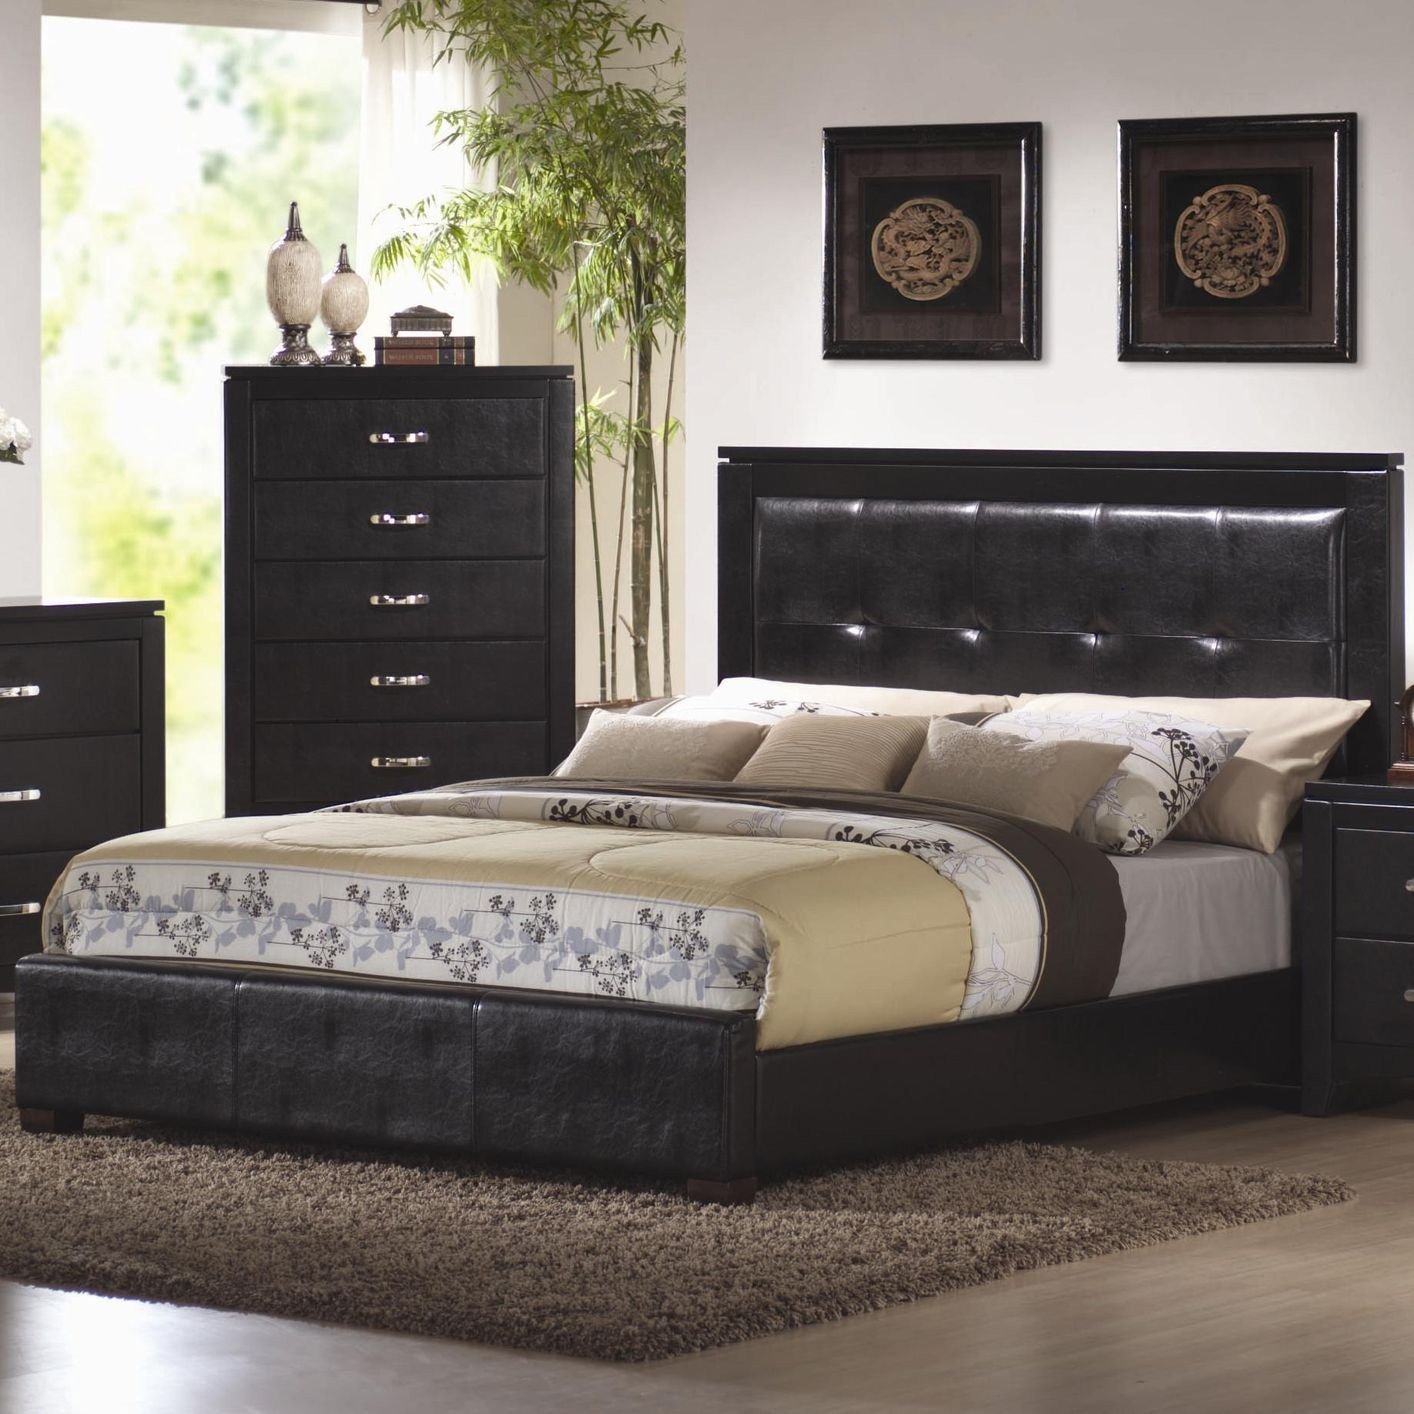 king size black bedroom furniture sets photo - 10